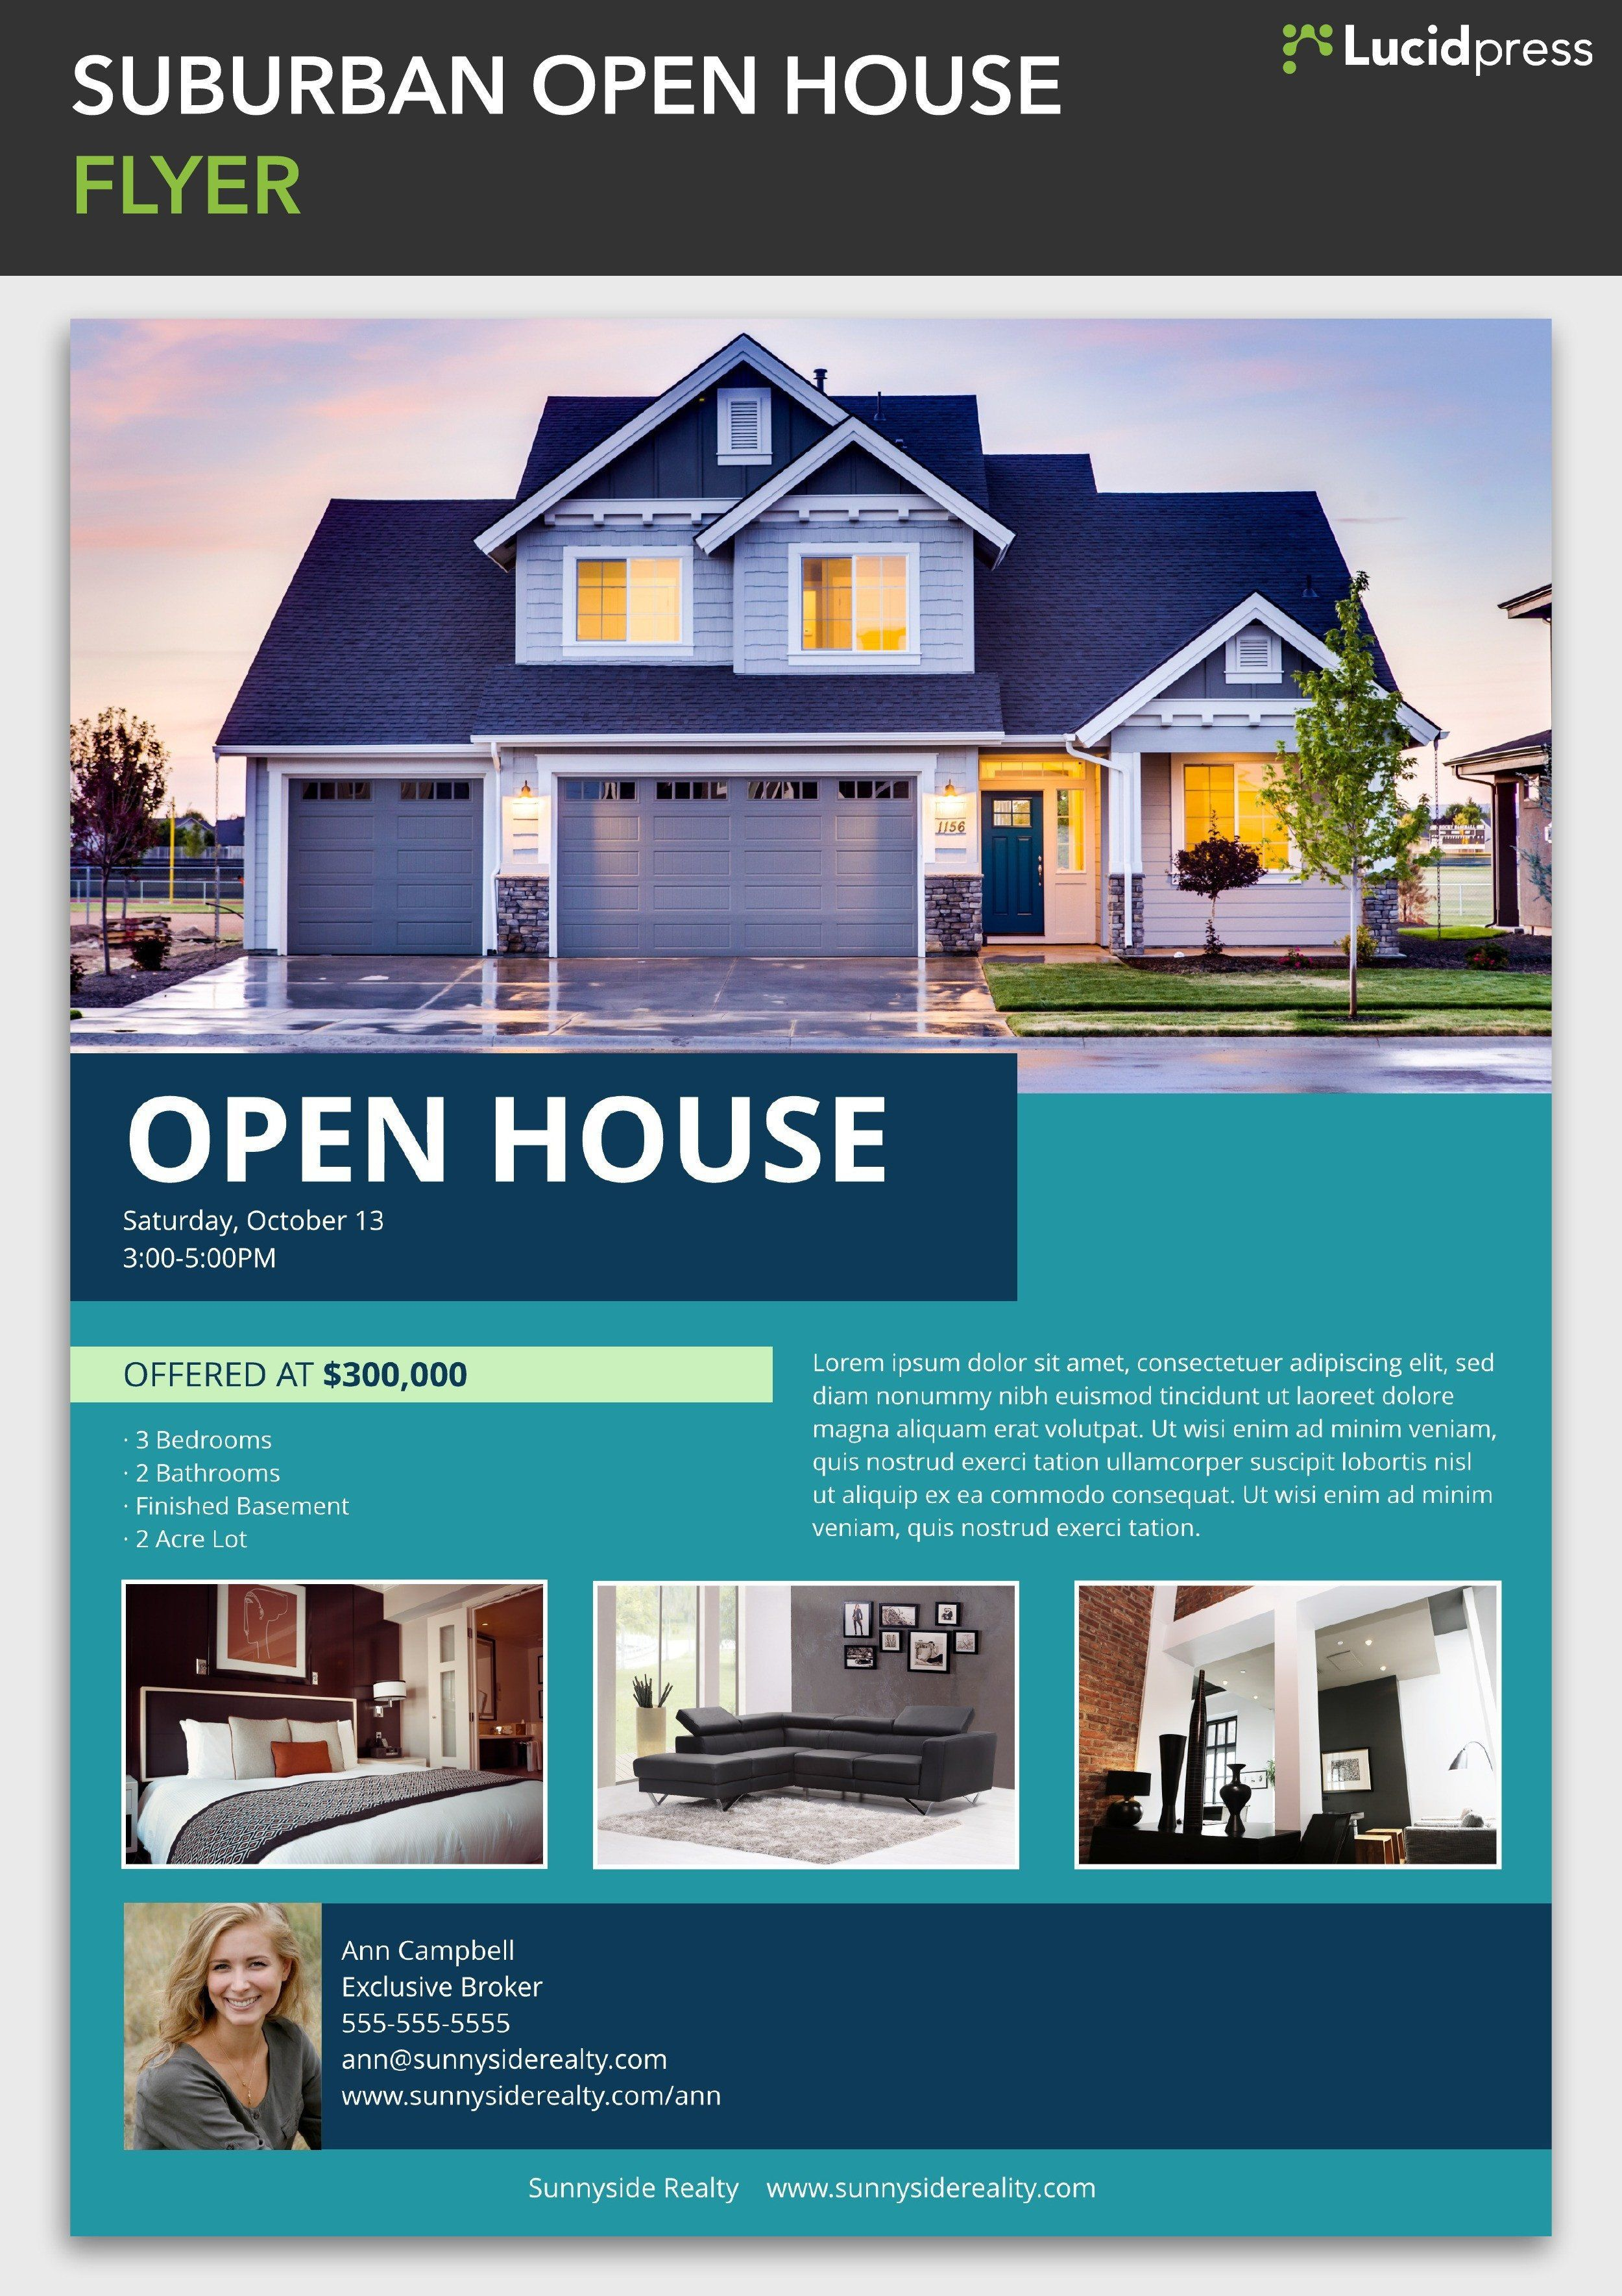 002 Magnificent Open House Flyer Template High Def  Templates Word Free School MicrosoftFull